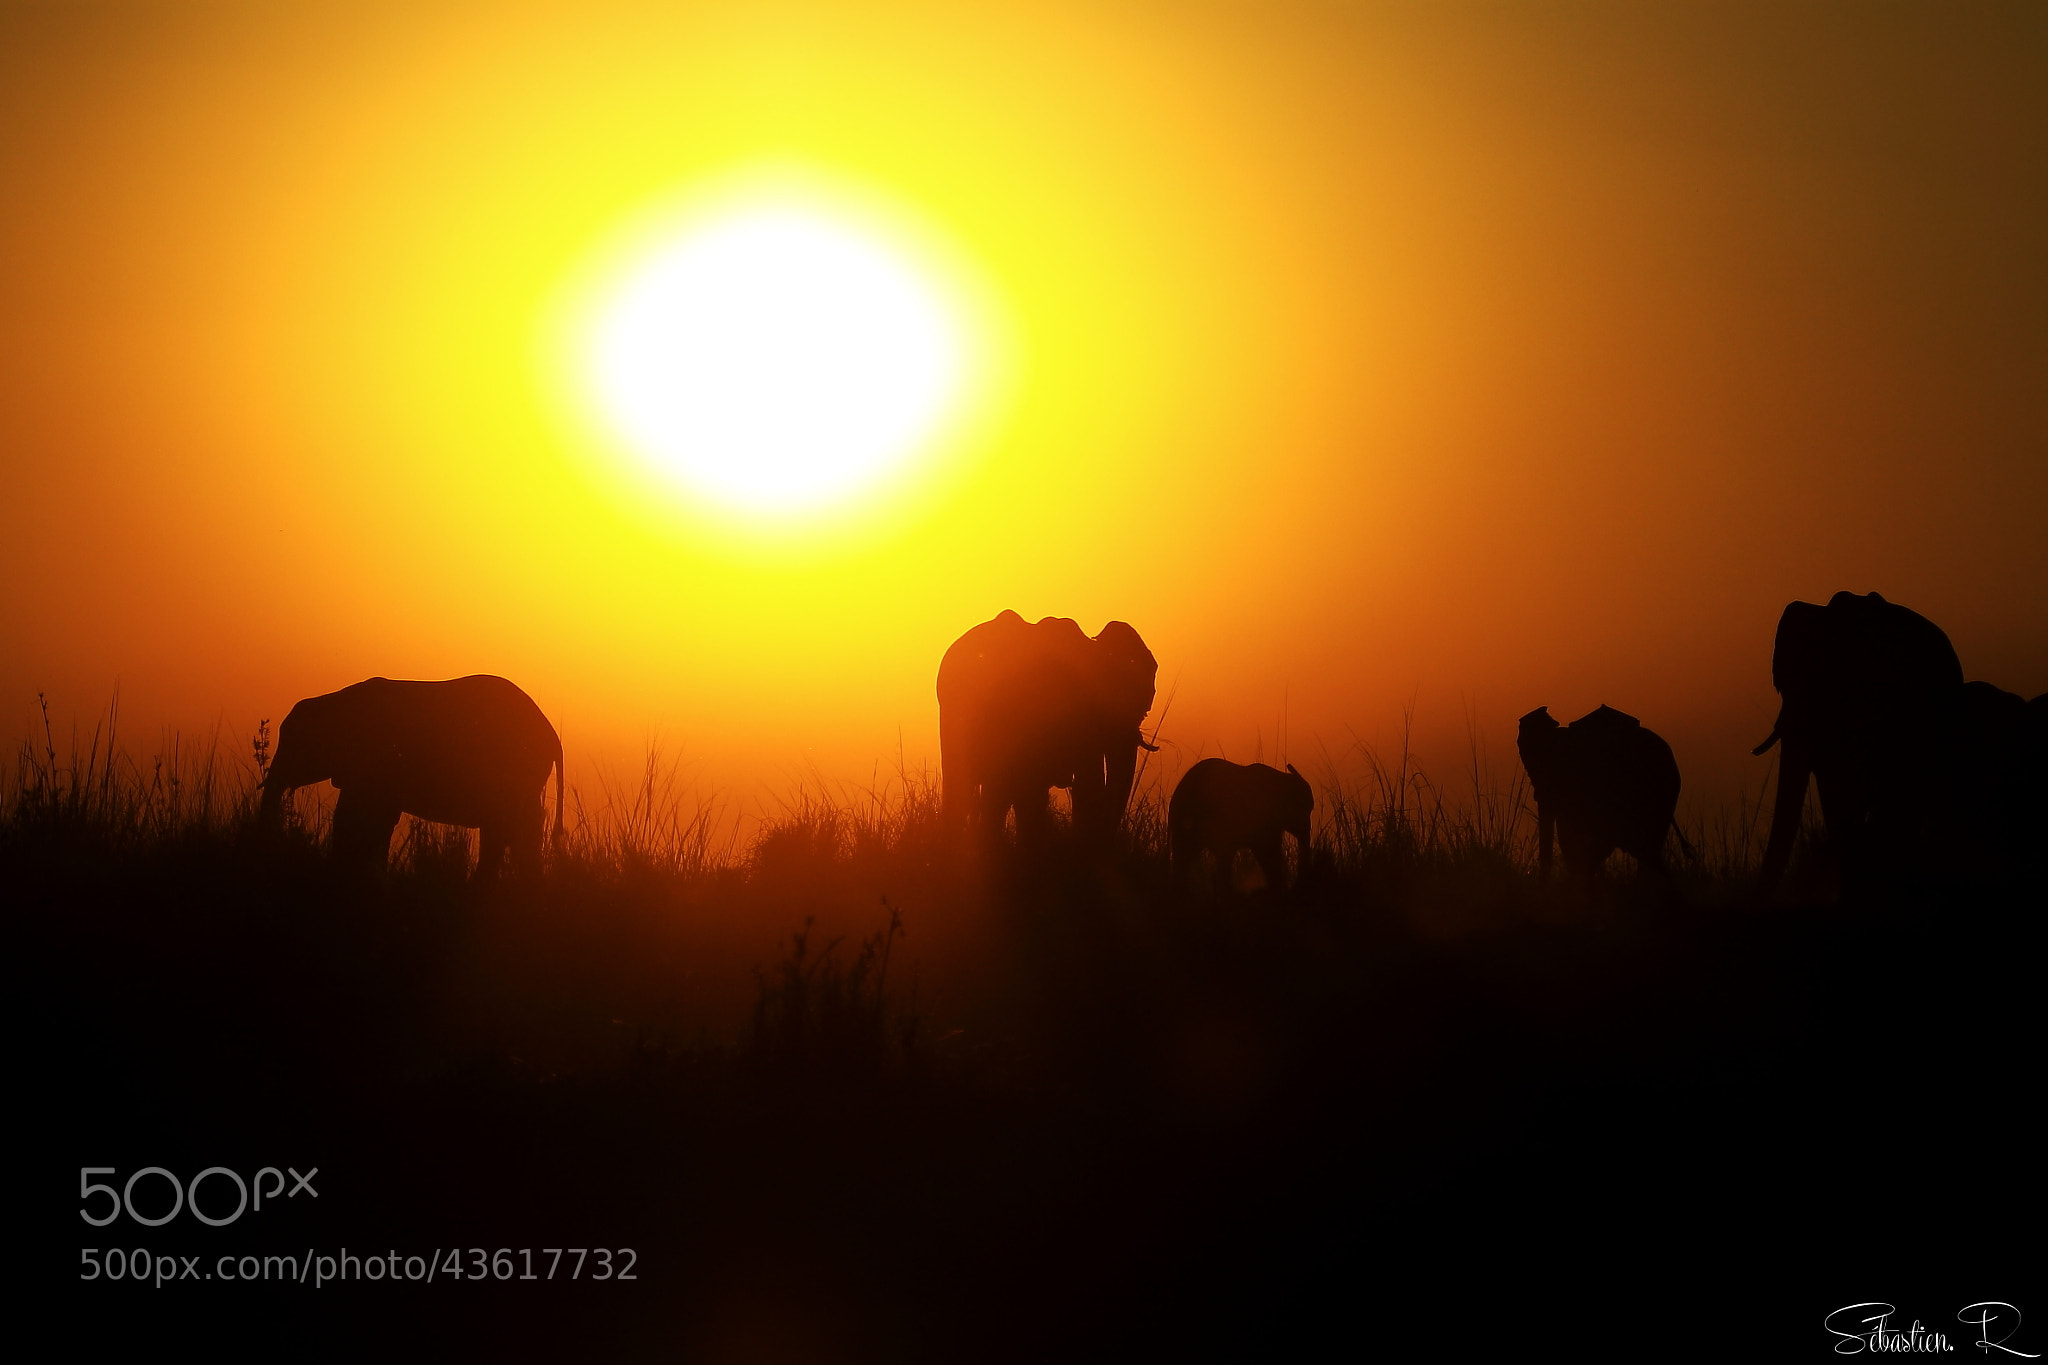 Photograph Elephant's walk by Sébastien Rodrigues on 500px